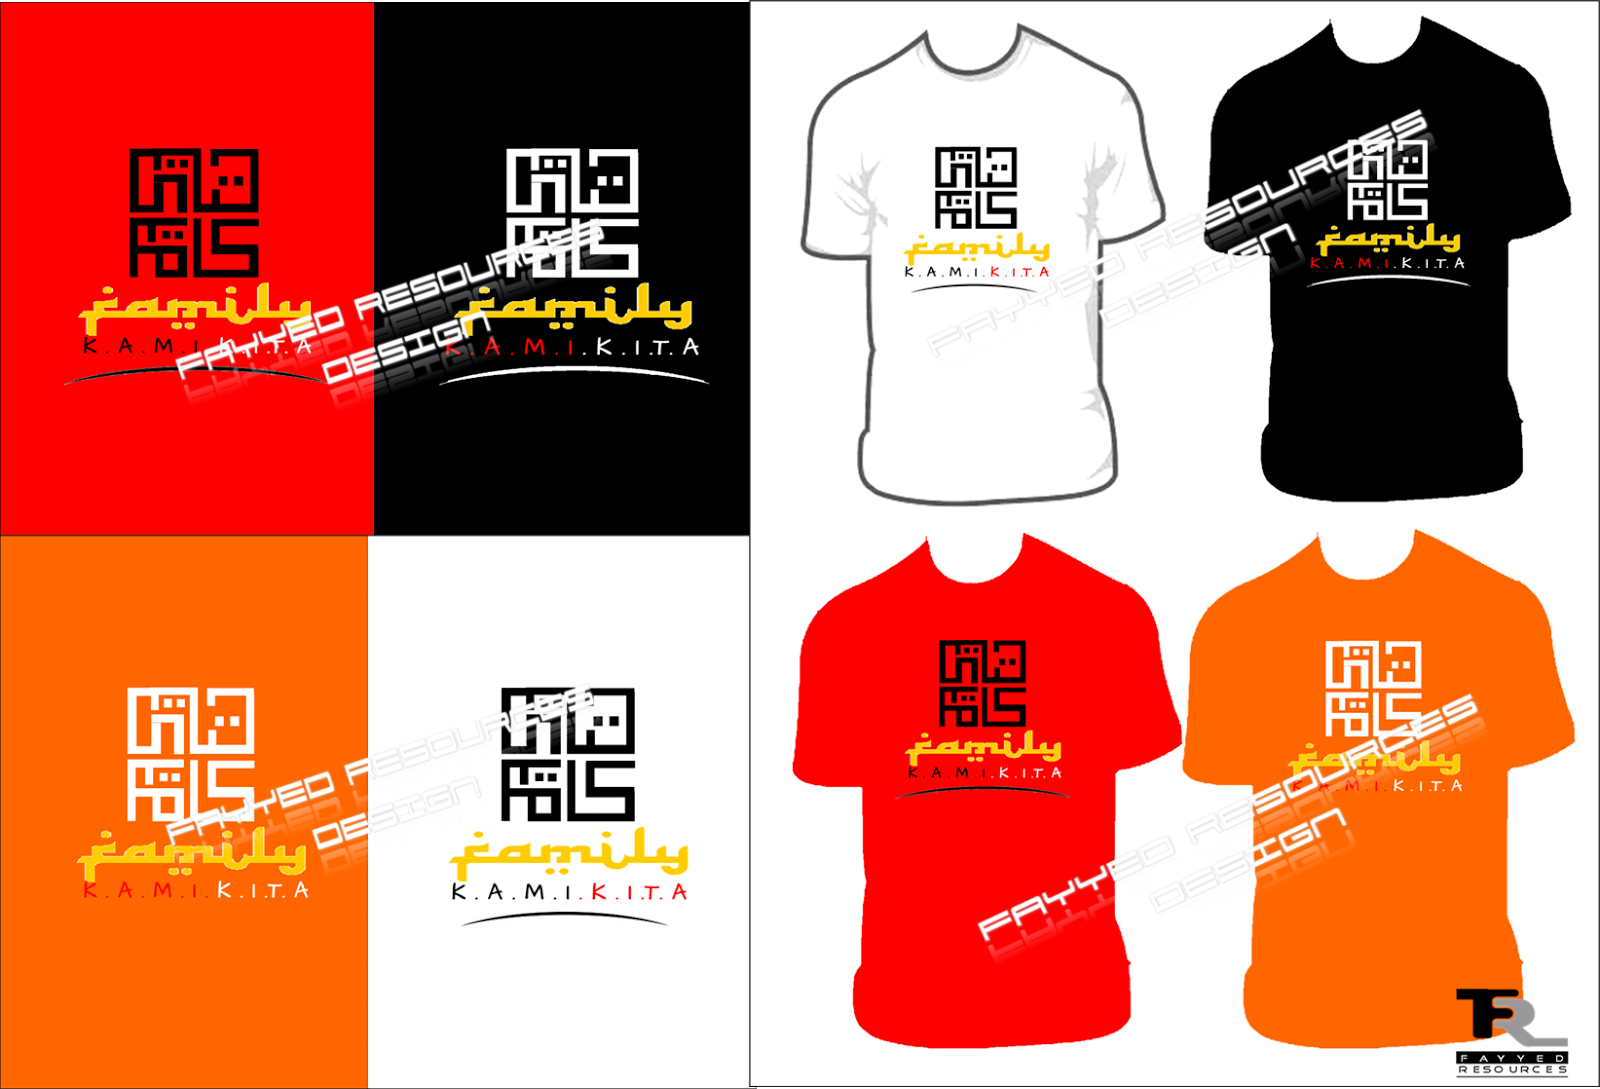 Design tshirt family - Design Tshirt Family Interested To Hire Us To Design Your T Shirt With Affordable Price